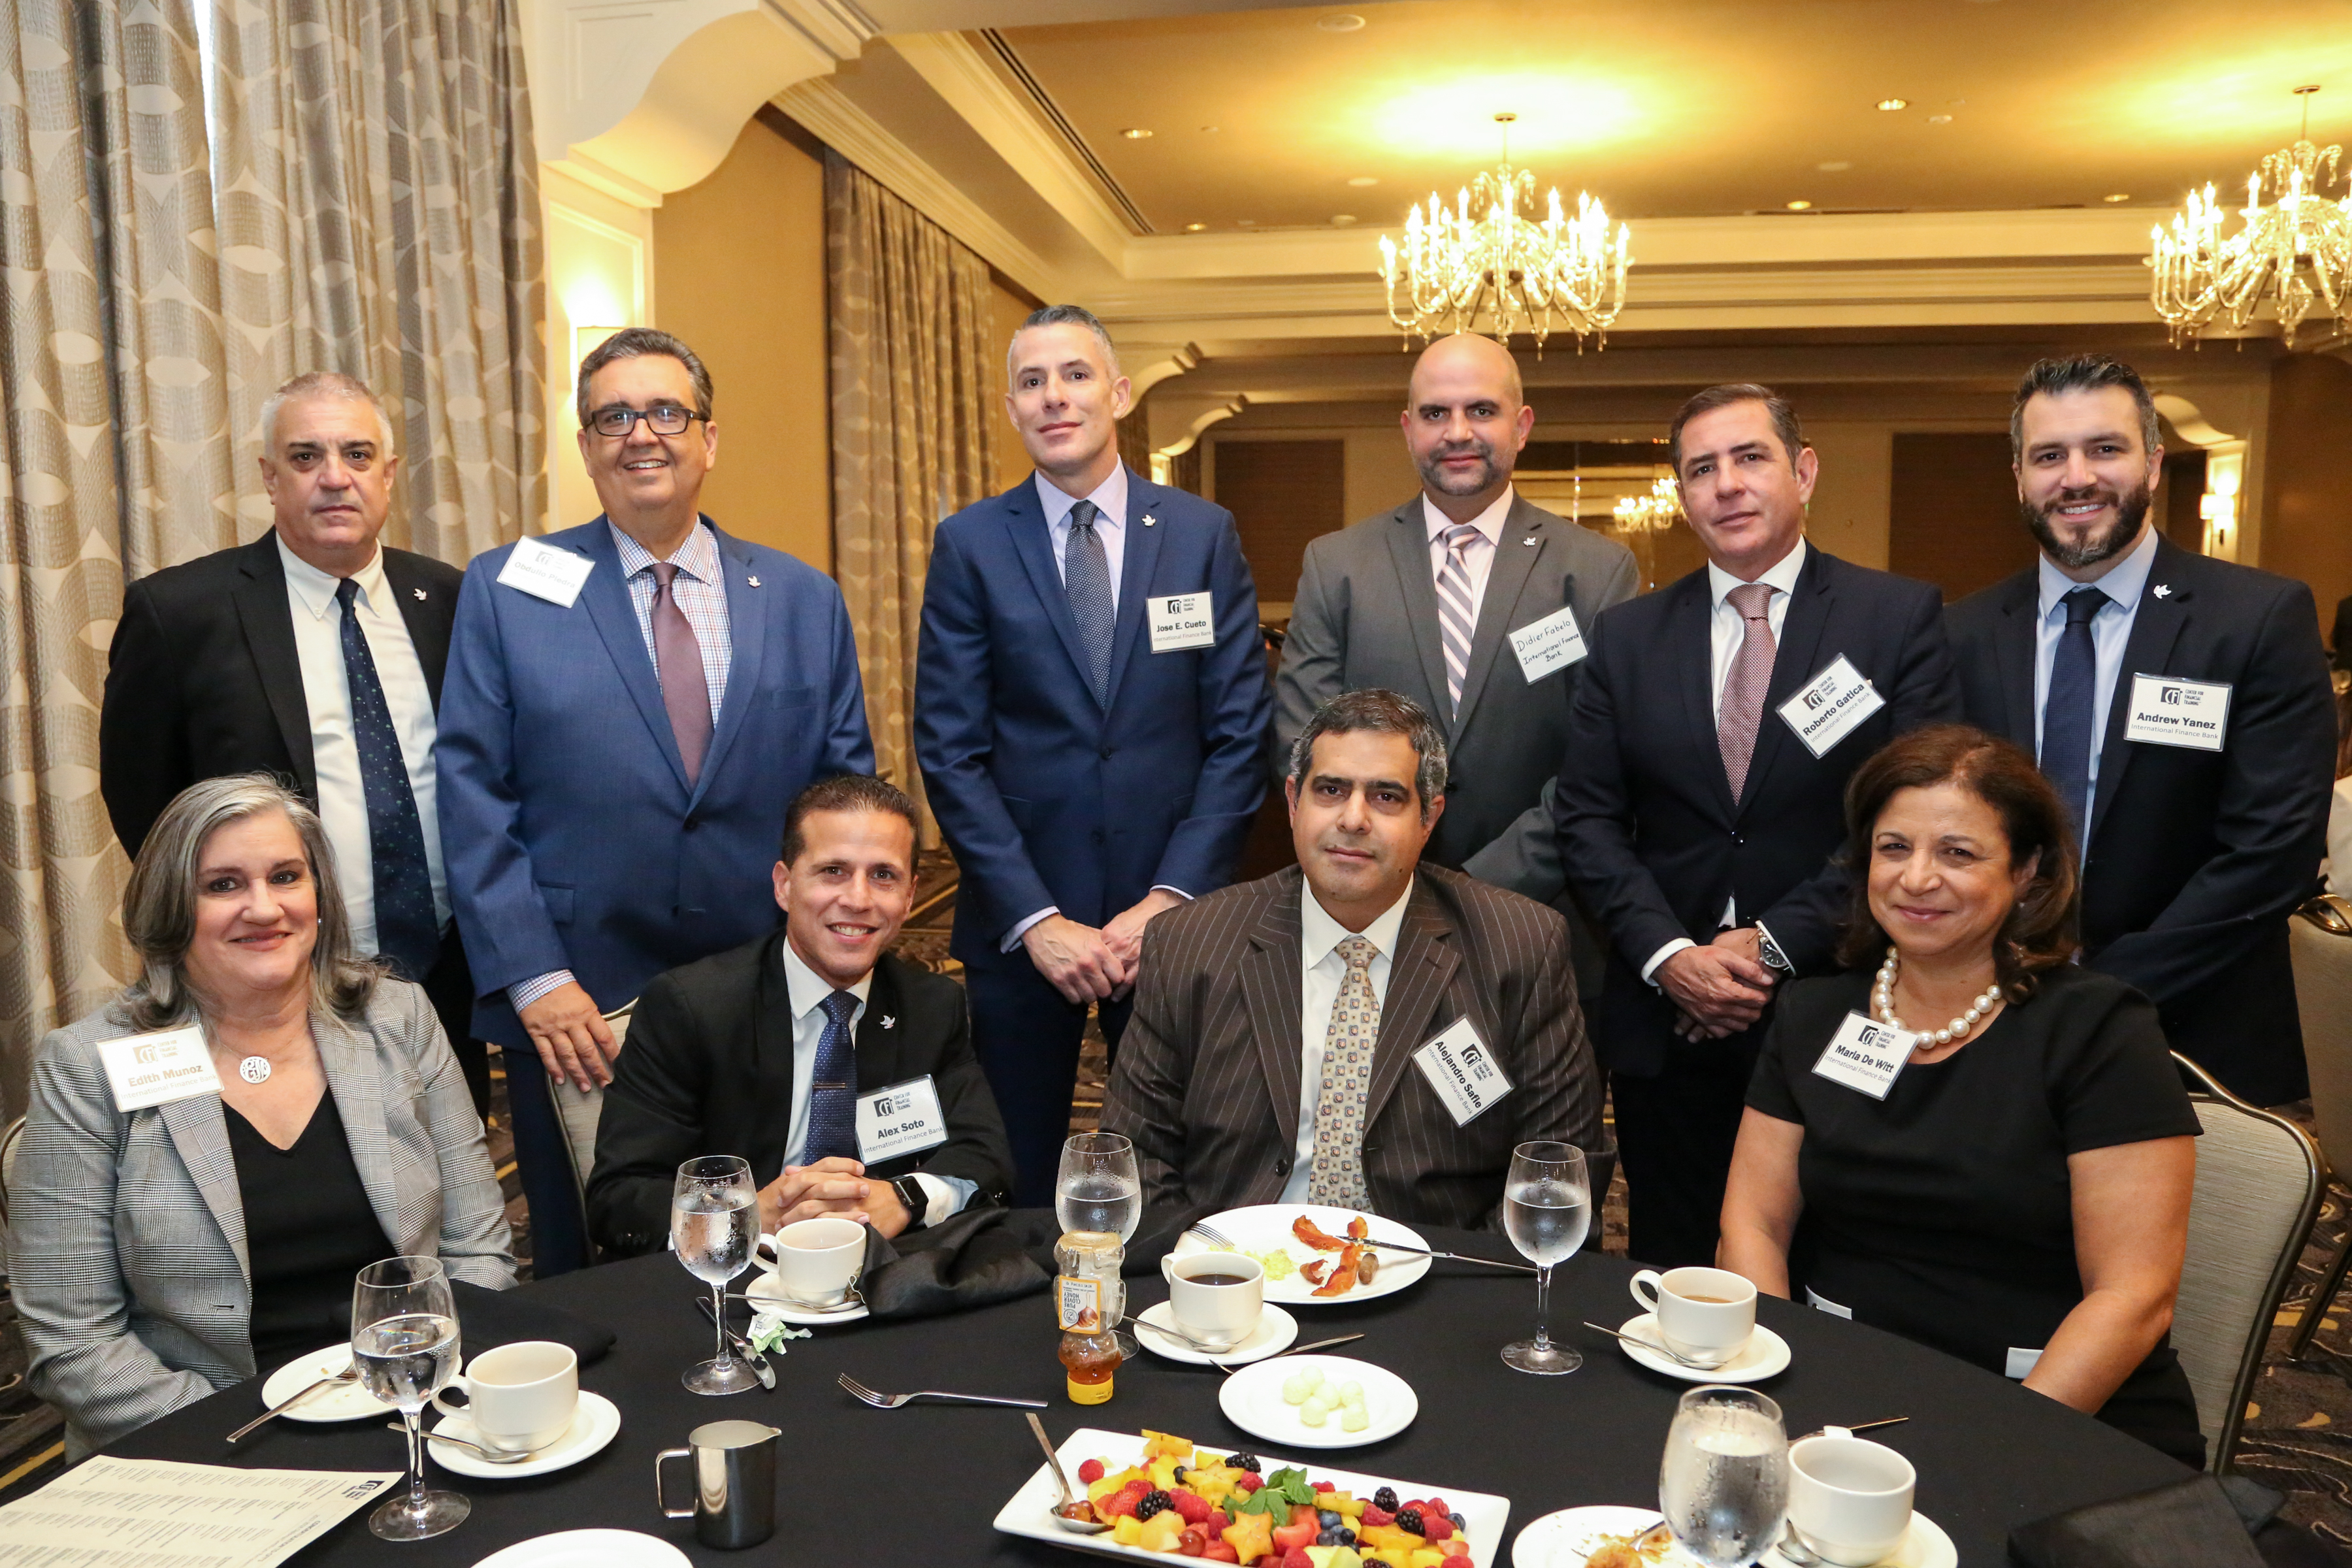 CFT Annual Forum and Graduation Ceremony at The Westin Colonnade Hotel, Coral Gables, August 29, 2018